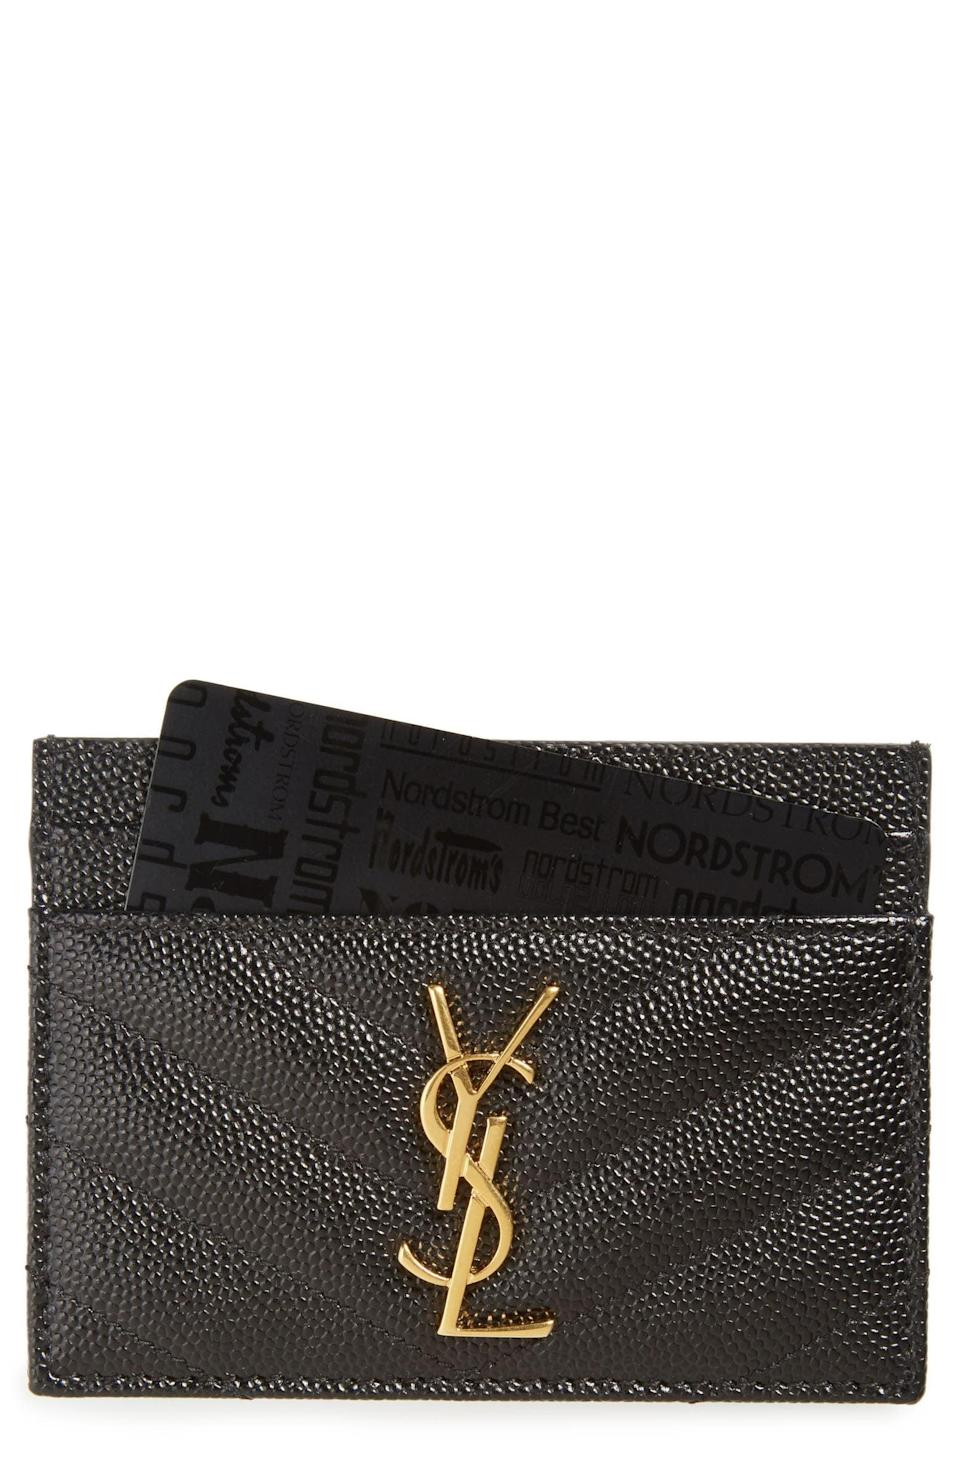 <p>Go above and beyond by surprising them with this luxe <span>Saint Laurent Monogram Quilted Leather Credit Card Case</span> ($275). It's so useful, and great to throw into even the tiniest bags.</p>